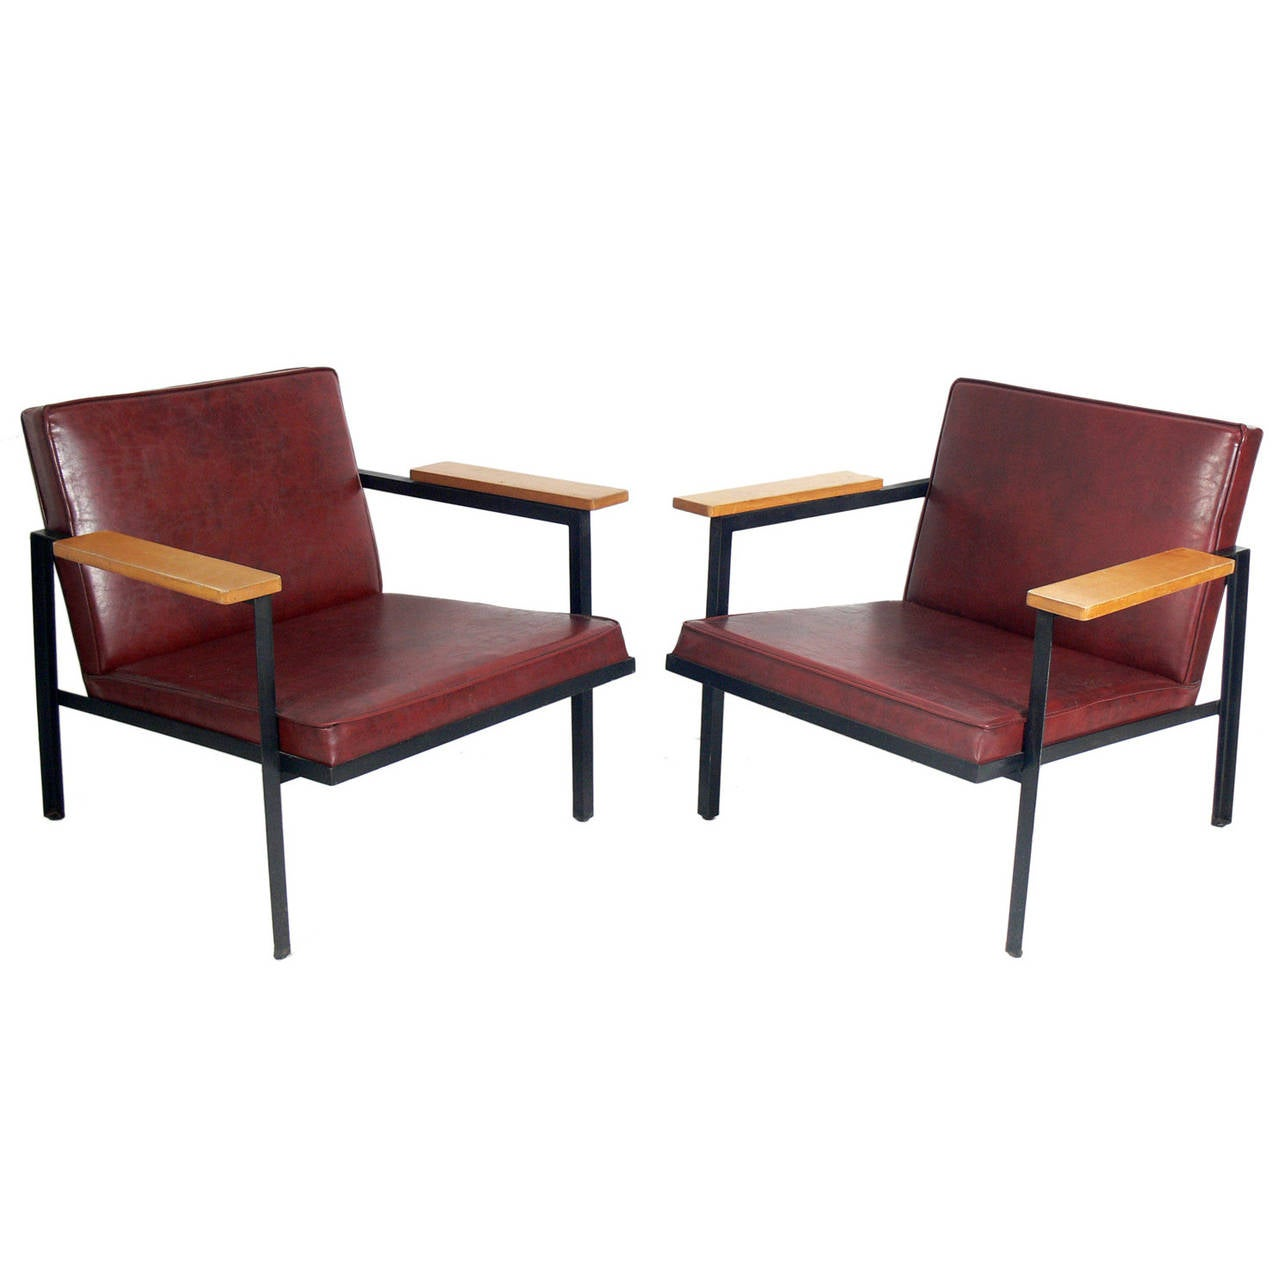 Pair of Modern Lounge Chairs Designed by George Nelson